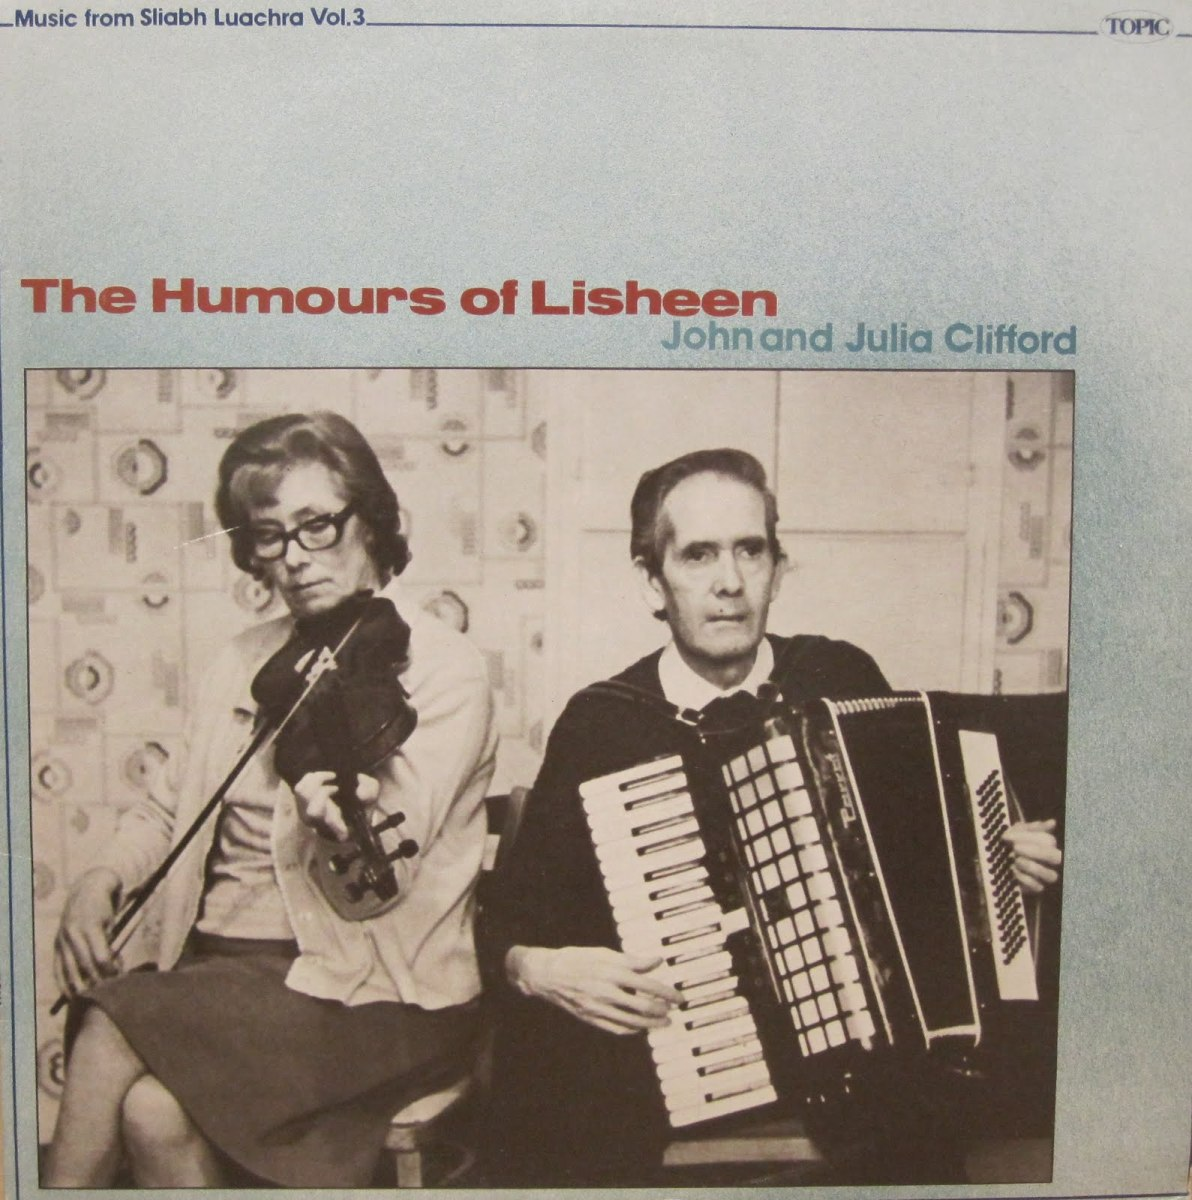 Humours of Lisheen. John & Julia Clifford. (1977)